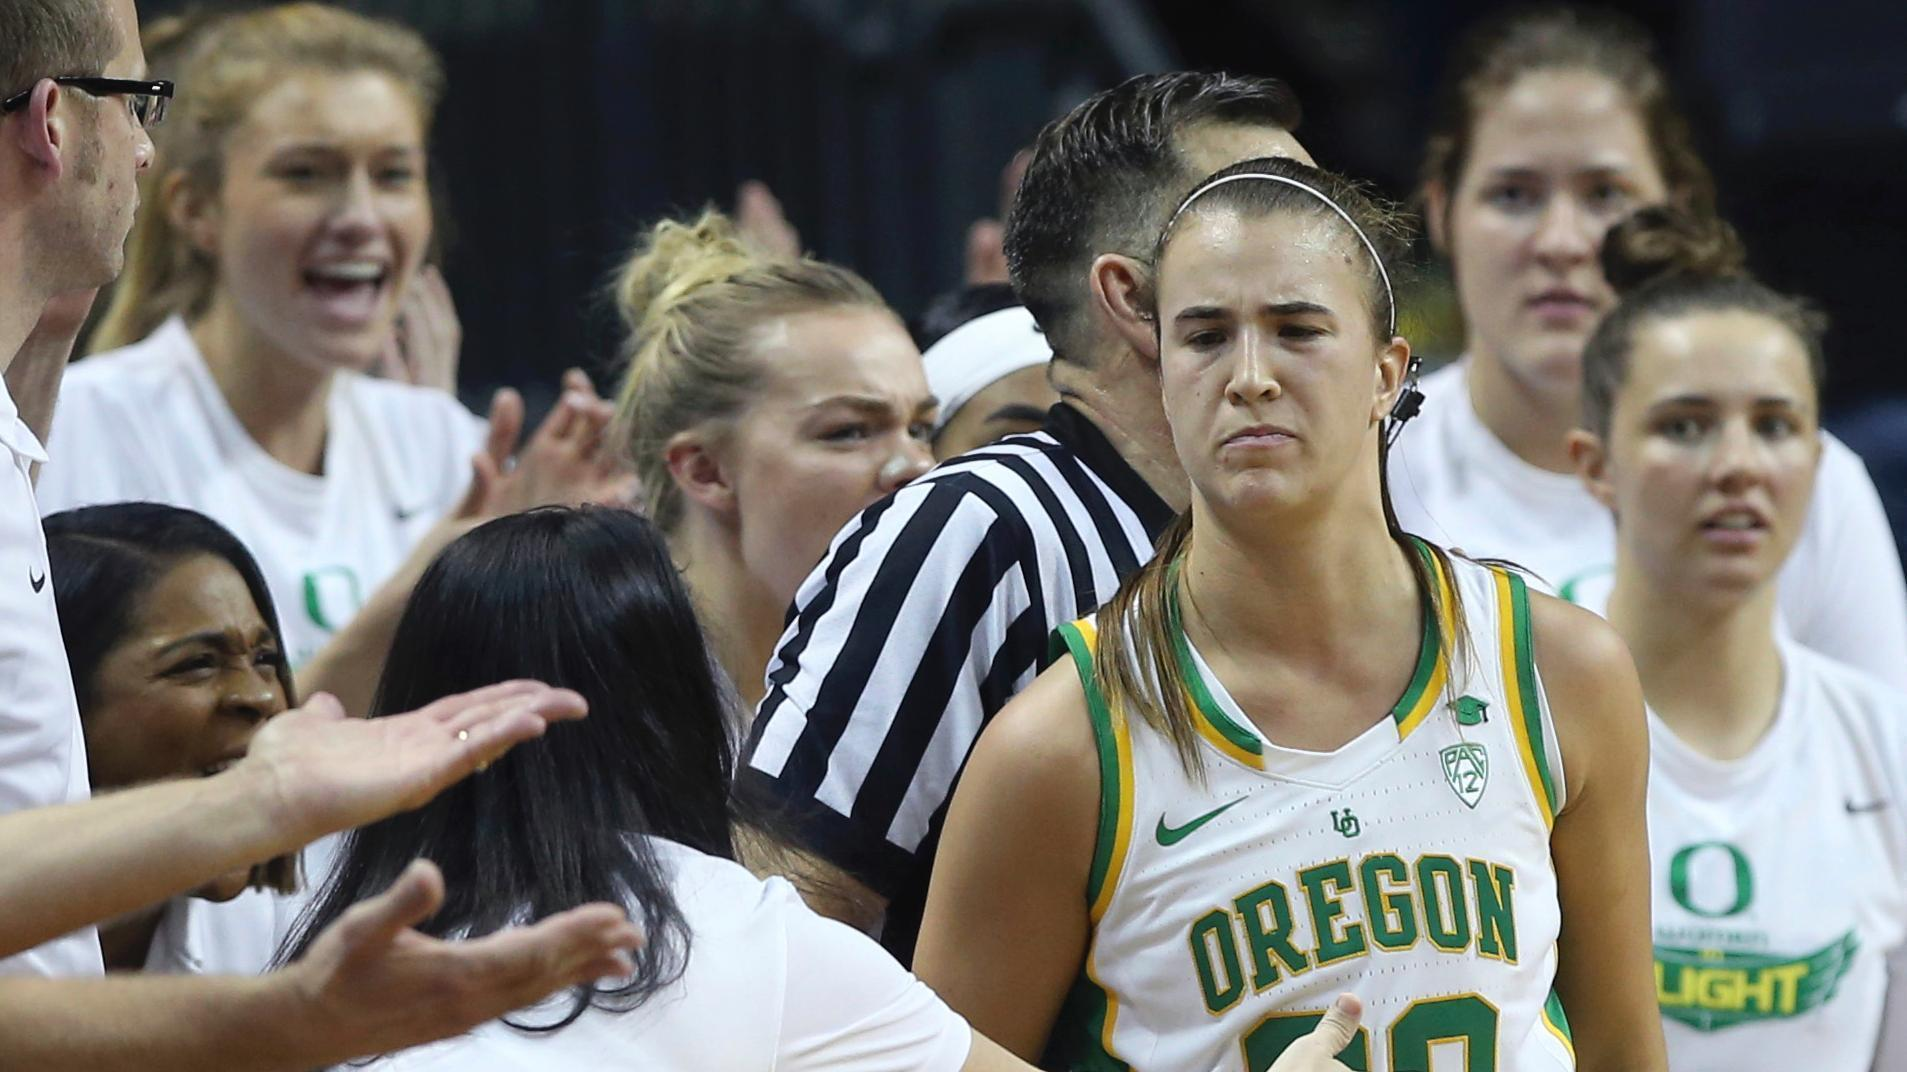 Ionescu dominates Oregon State scoring 23 points